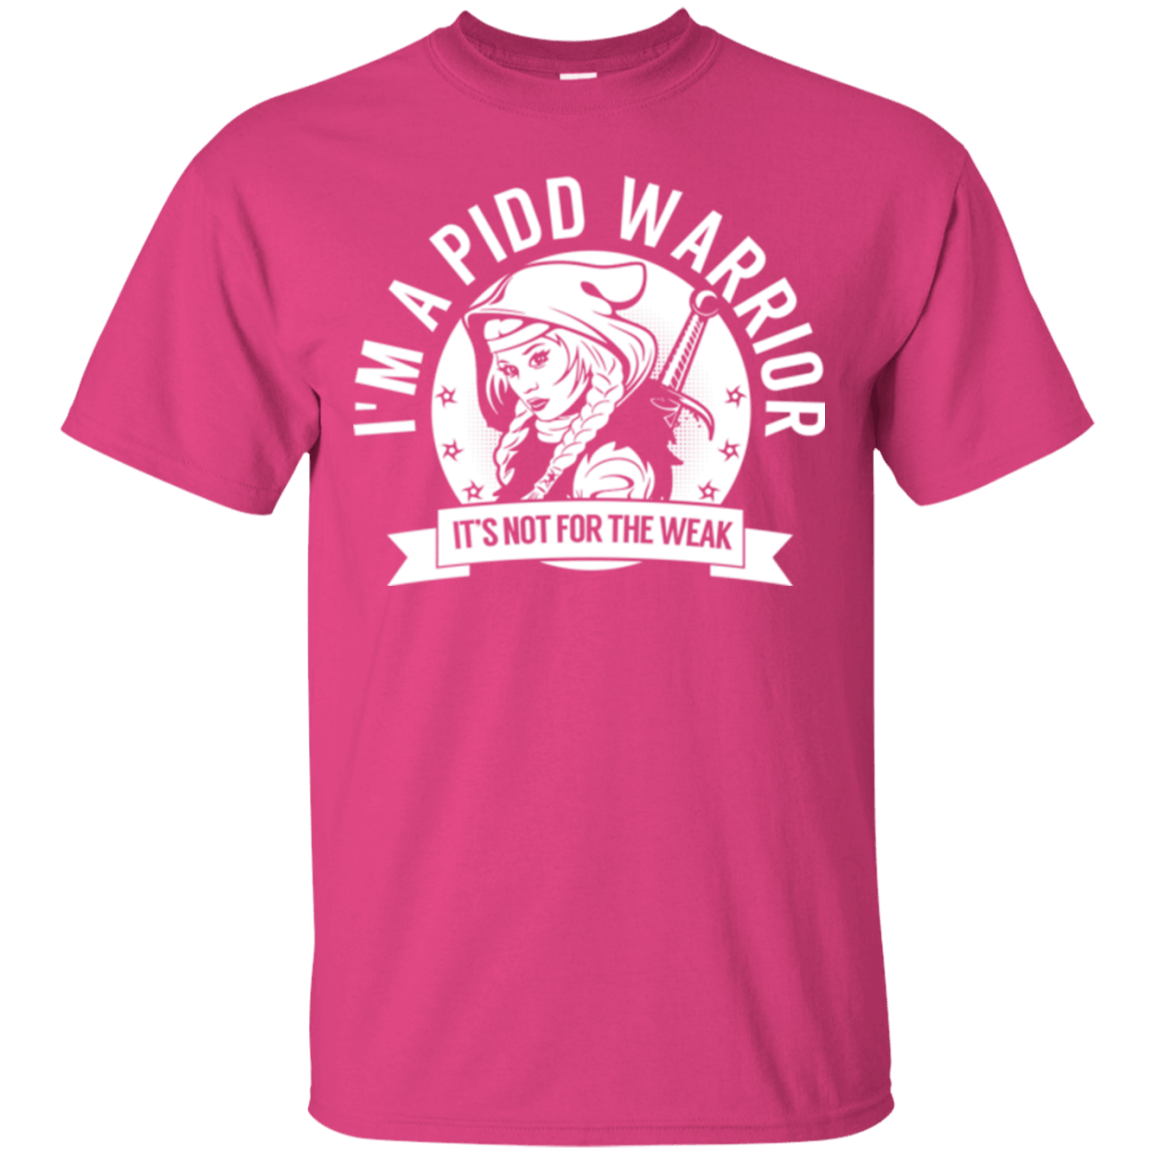 T-Shirts - Primary Immunodeficiency Diseases - PIDD Warrior Hooded Cotton T-Shirt